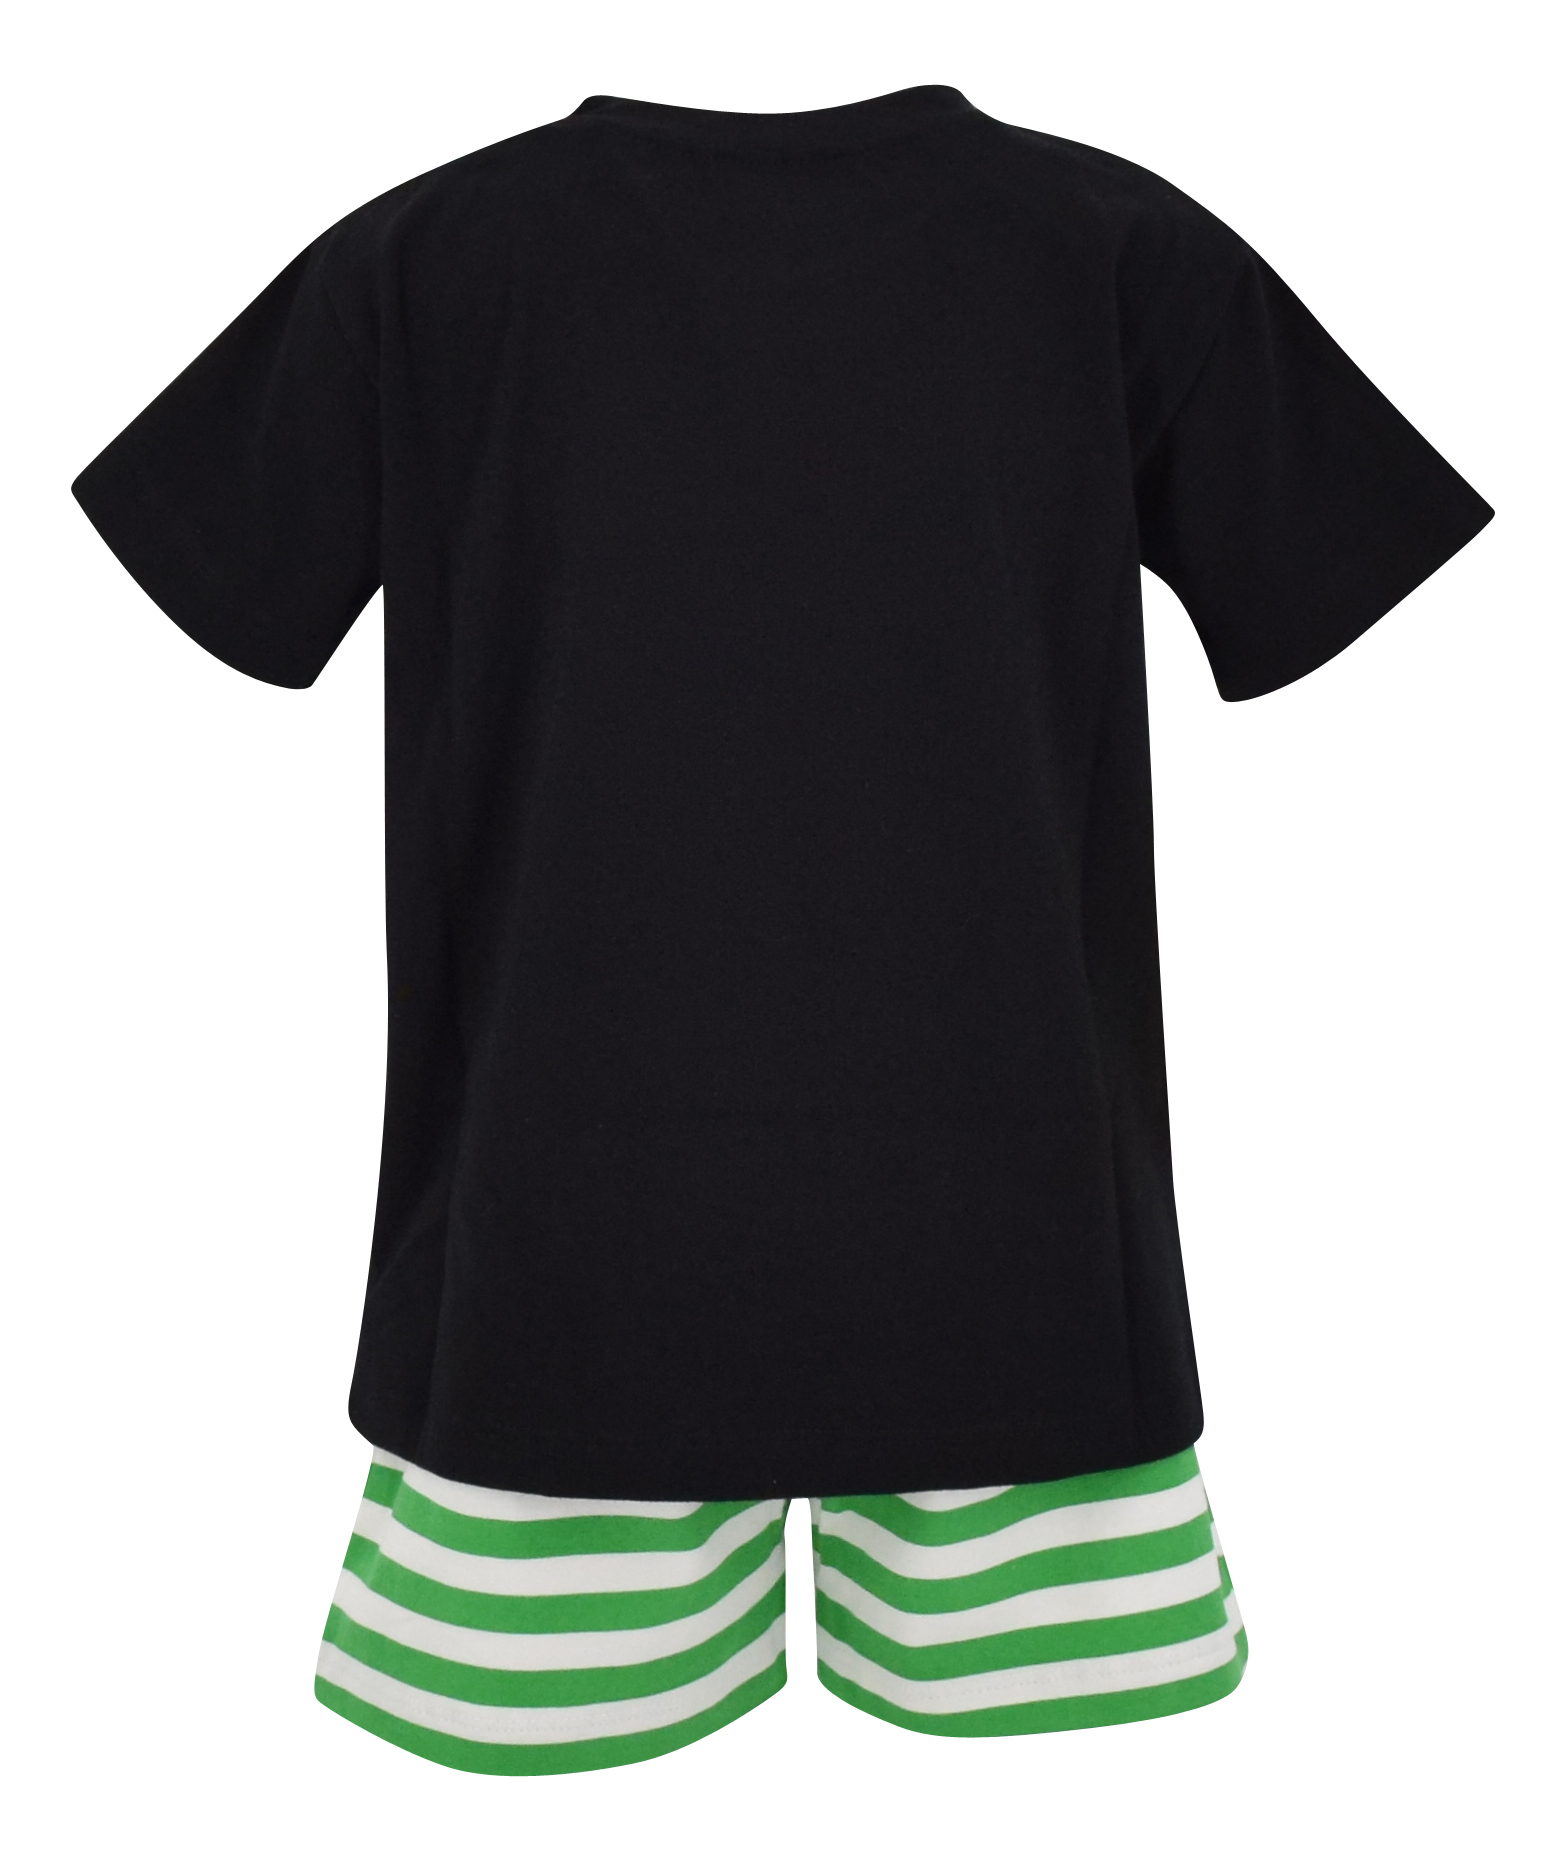 Boys-2-Piece-ST-Patricks-Day-Clover-Outfit-2t-3t-4t-5-6-7-8-Toddler-Kids-Clothes thumbnail 33